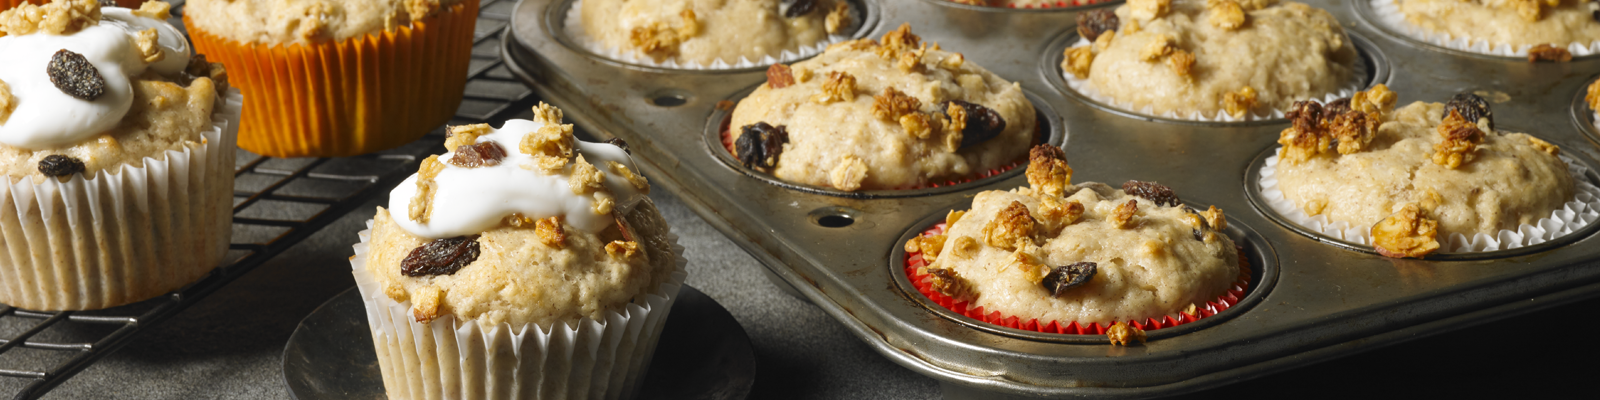 Banana Yogurt Muffins with Granola Topping